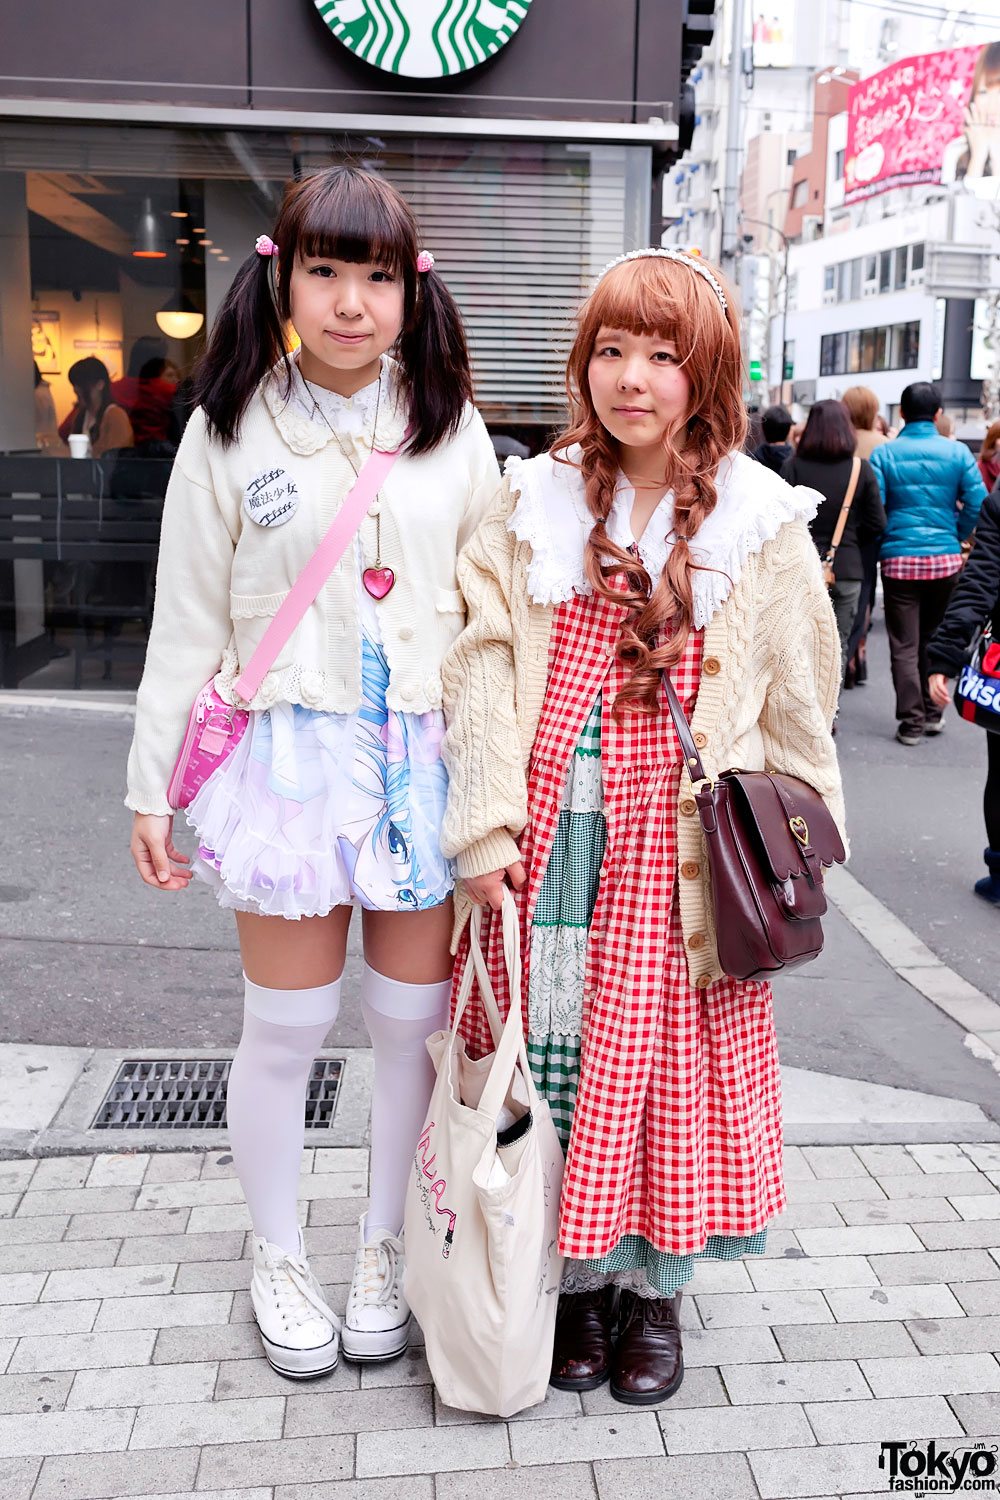 Harajuku Girls W Manga Dress Cable Knit Sweater Amp Smile